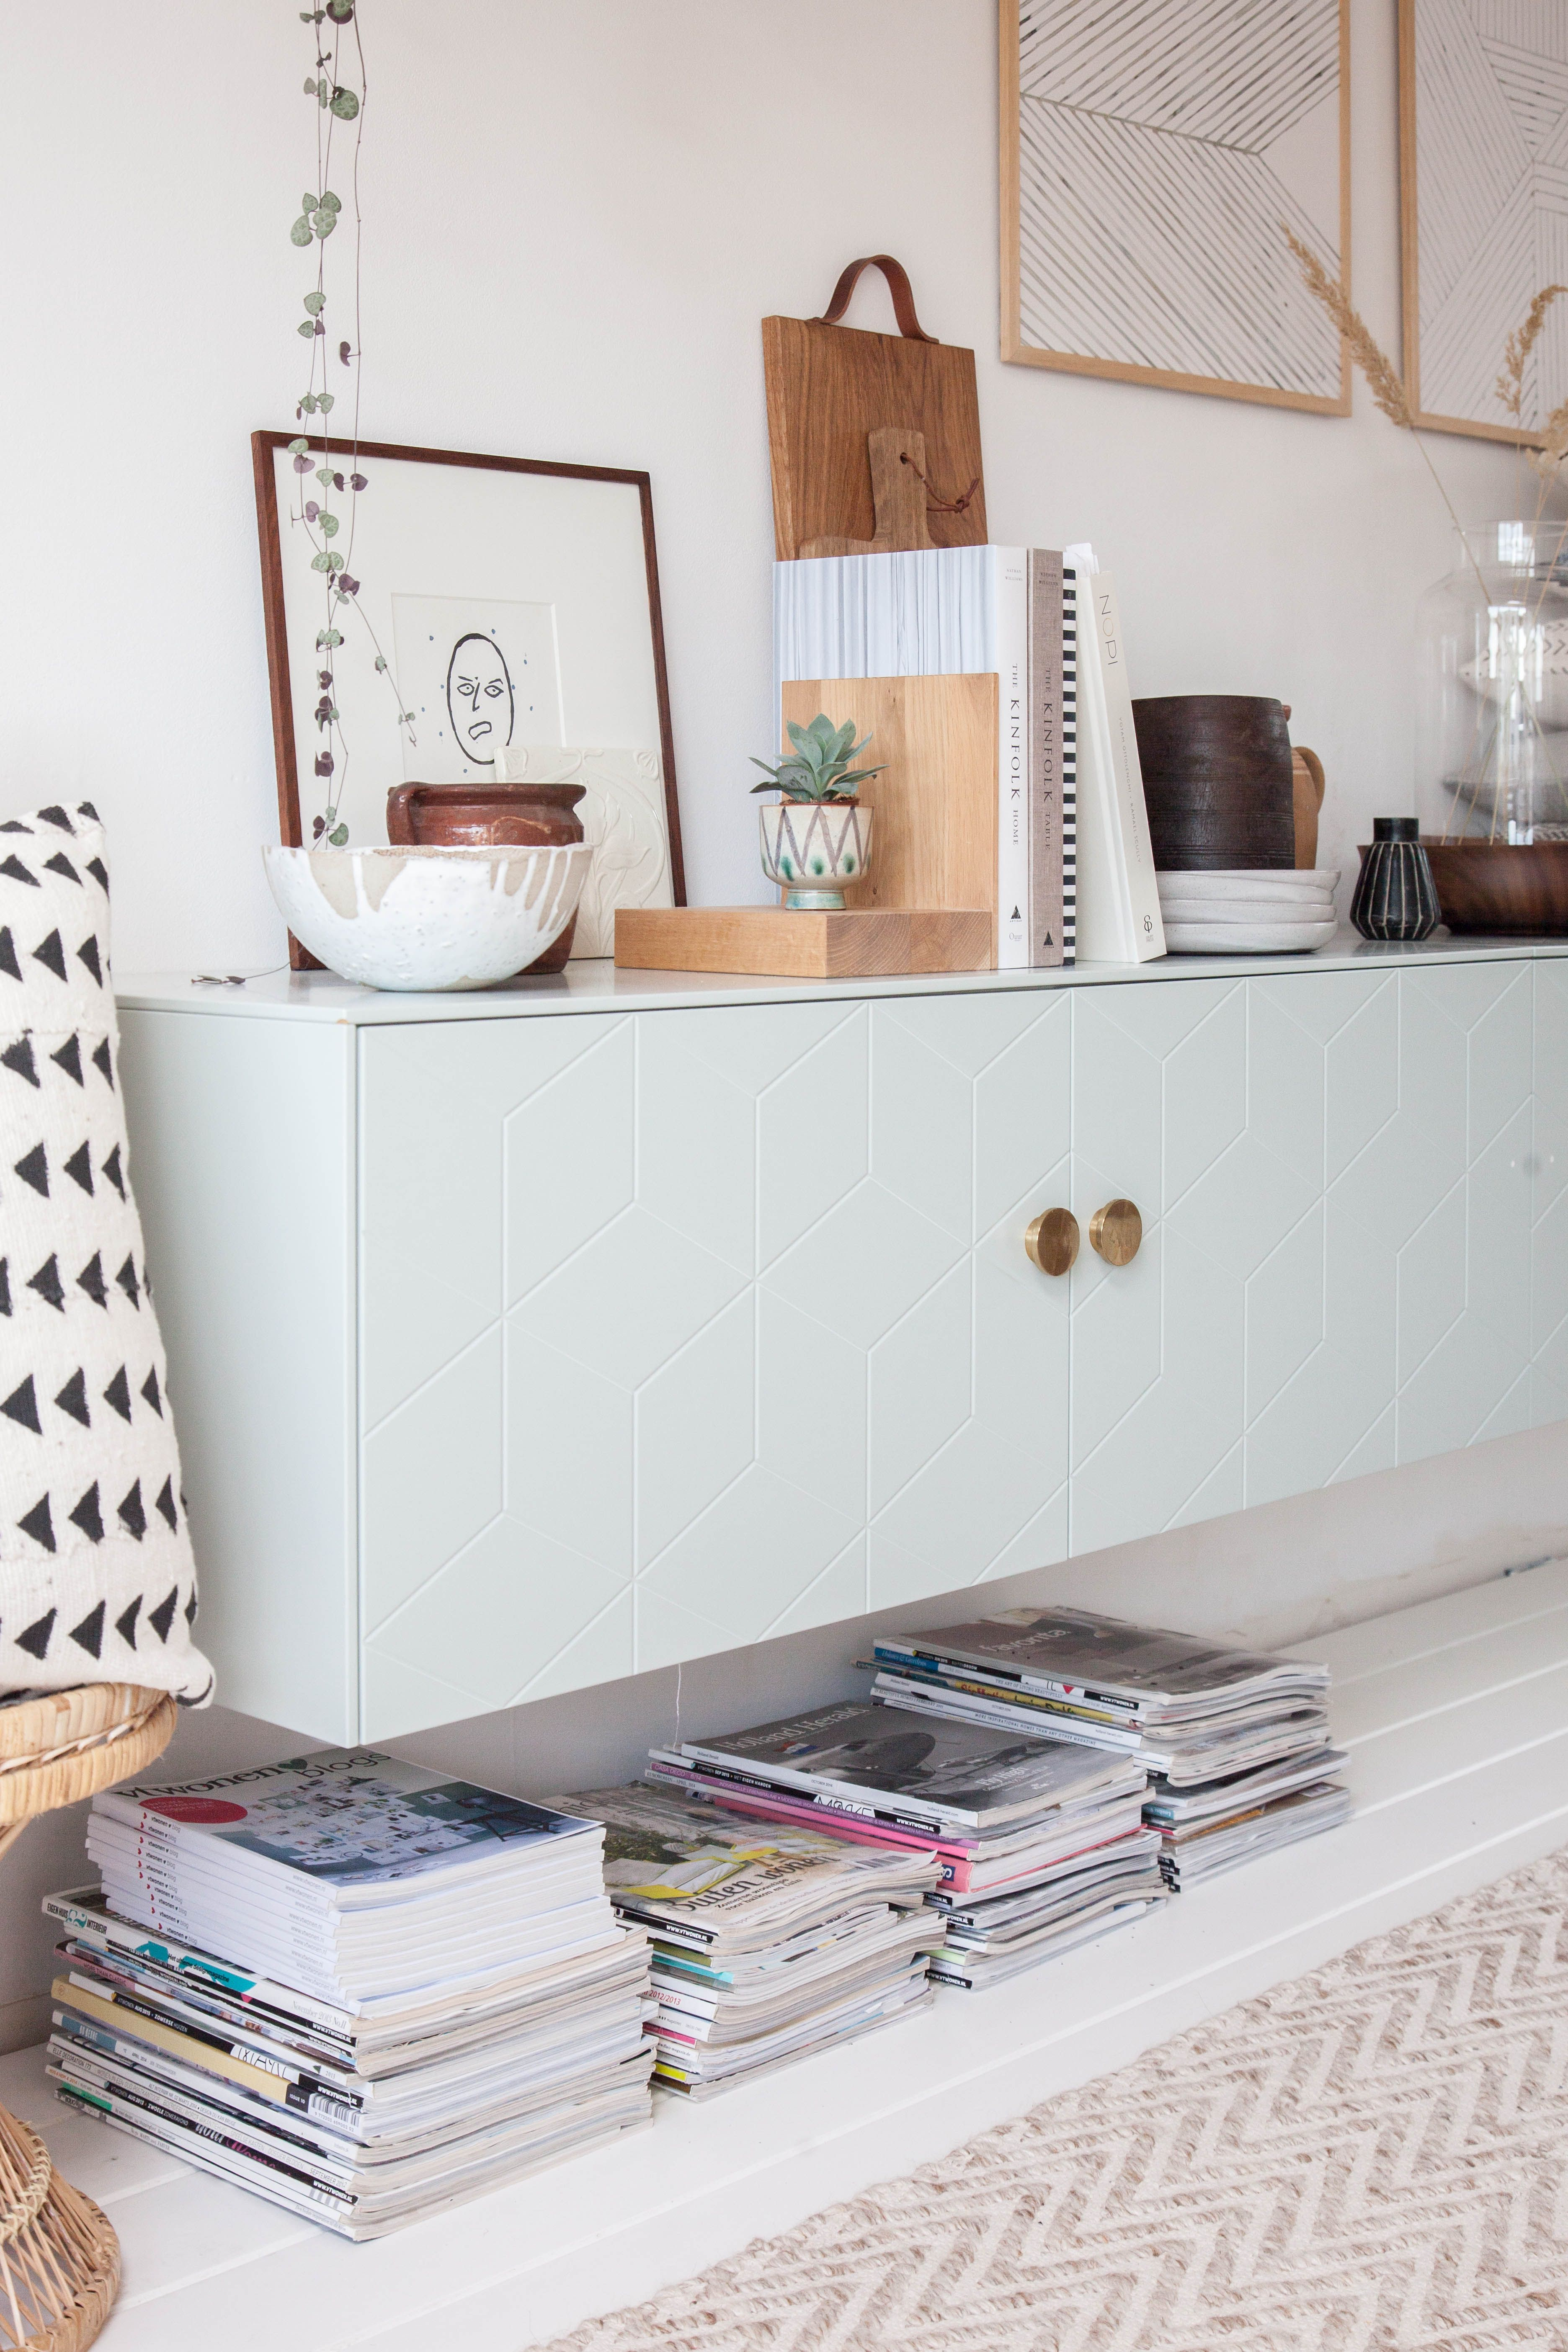 Gravity Home: Home office Holly Marder | home decor | Pinterest ...